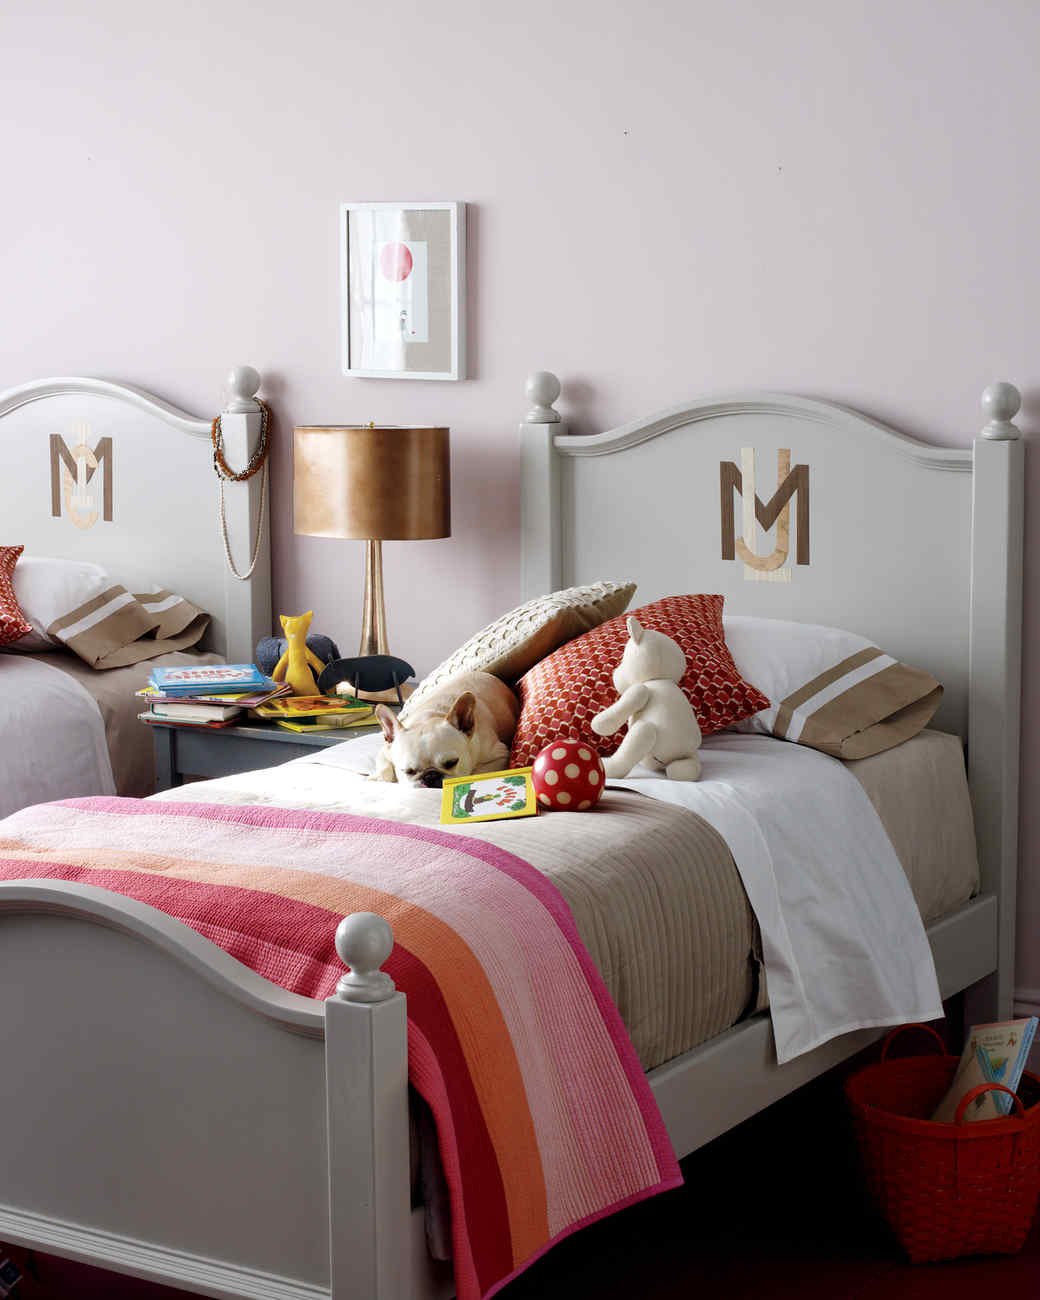 Monogram Decorations For Bedroom Girls Bedroom Ideas For The Thoroughly Sophisticated Young Lady